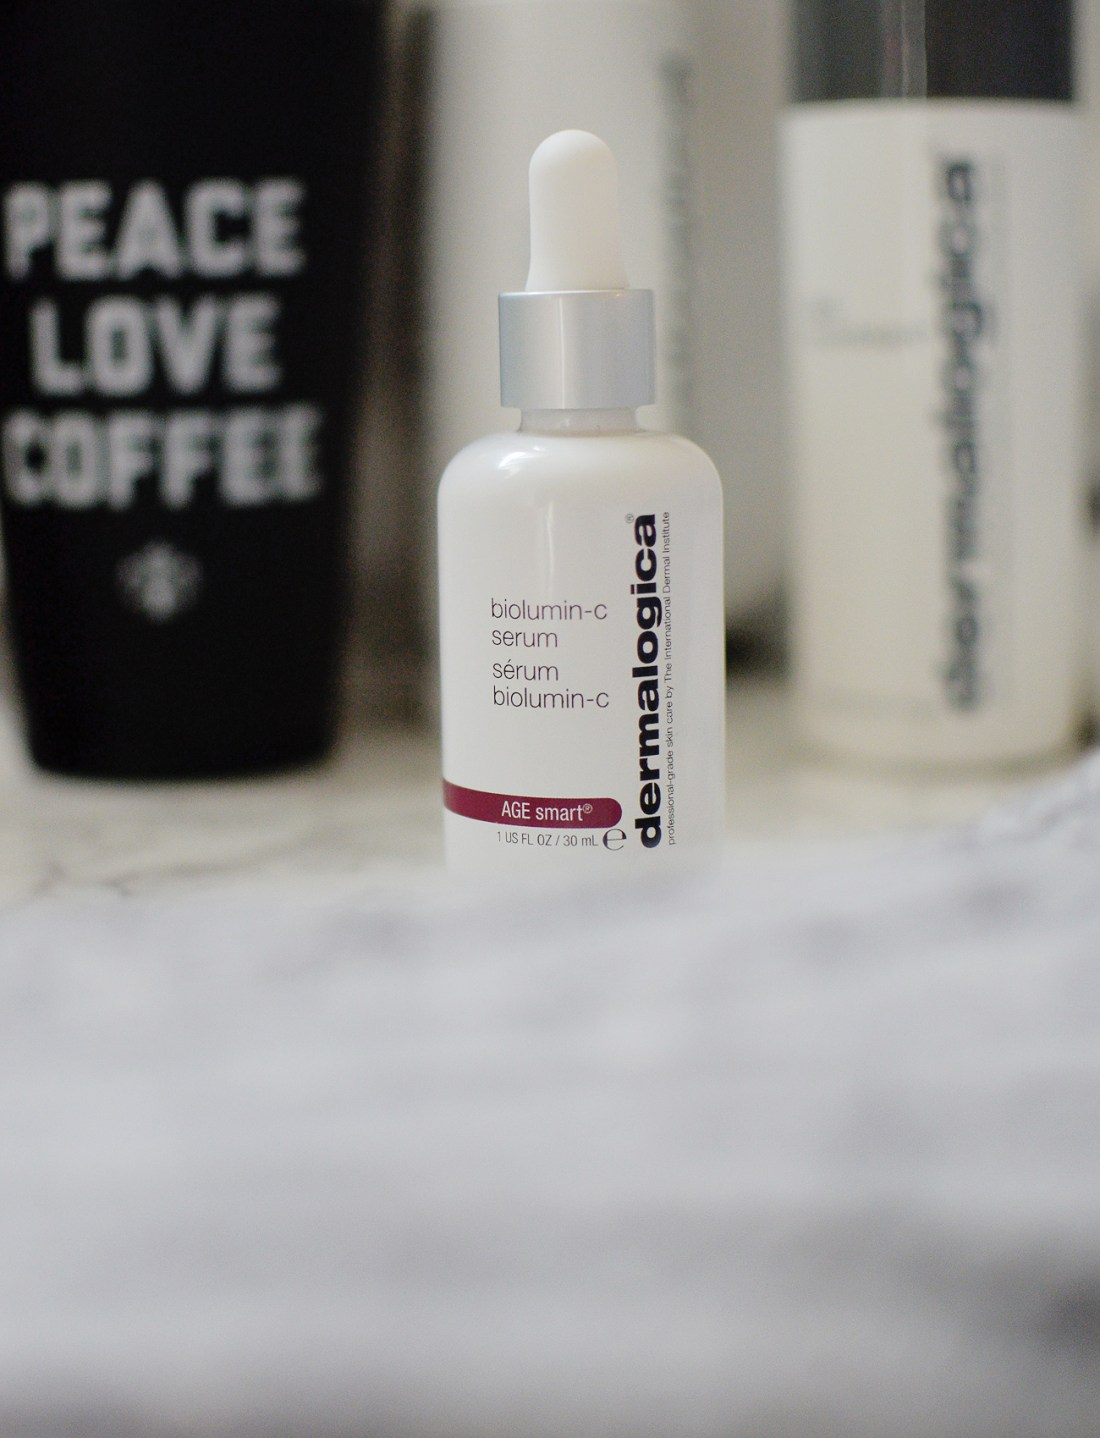 The Dermalogica Biolumin-C Serum is an anti-oxidant packed with Vitamin C which is a popular combo in skincare. Here's how Dermalogica's version compare!